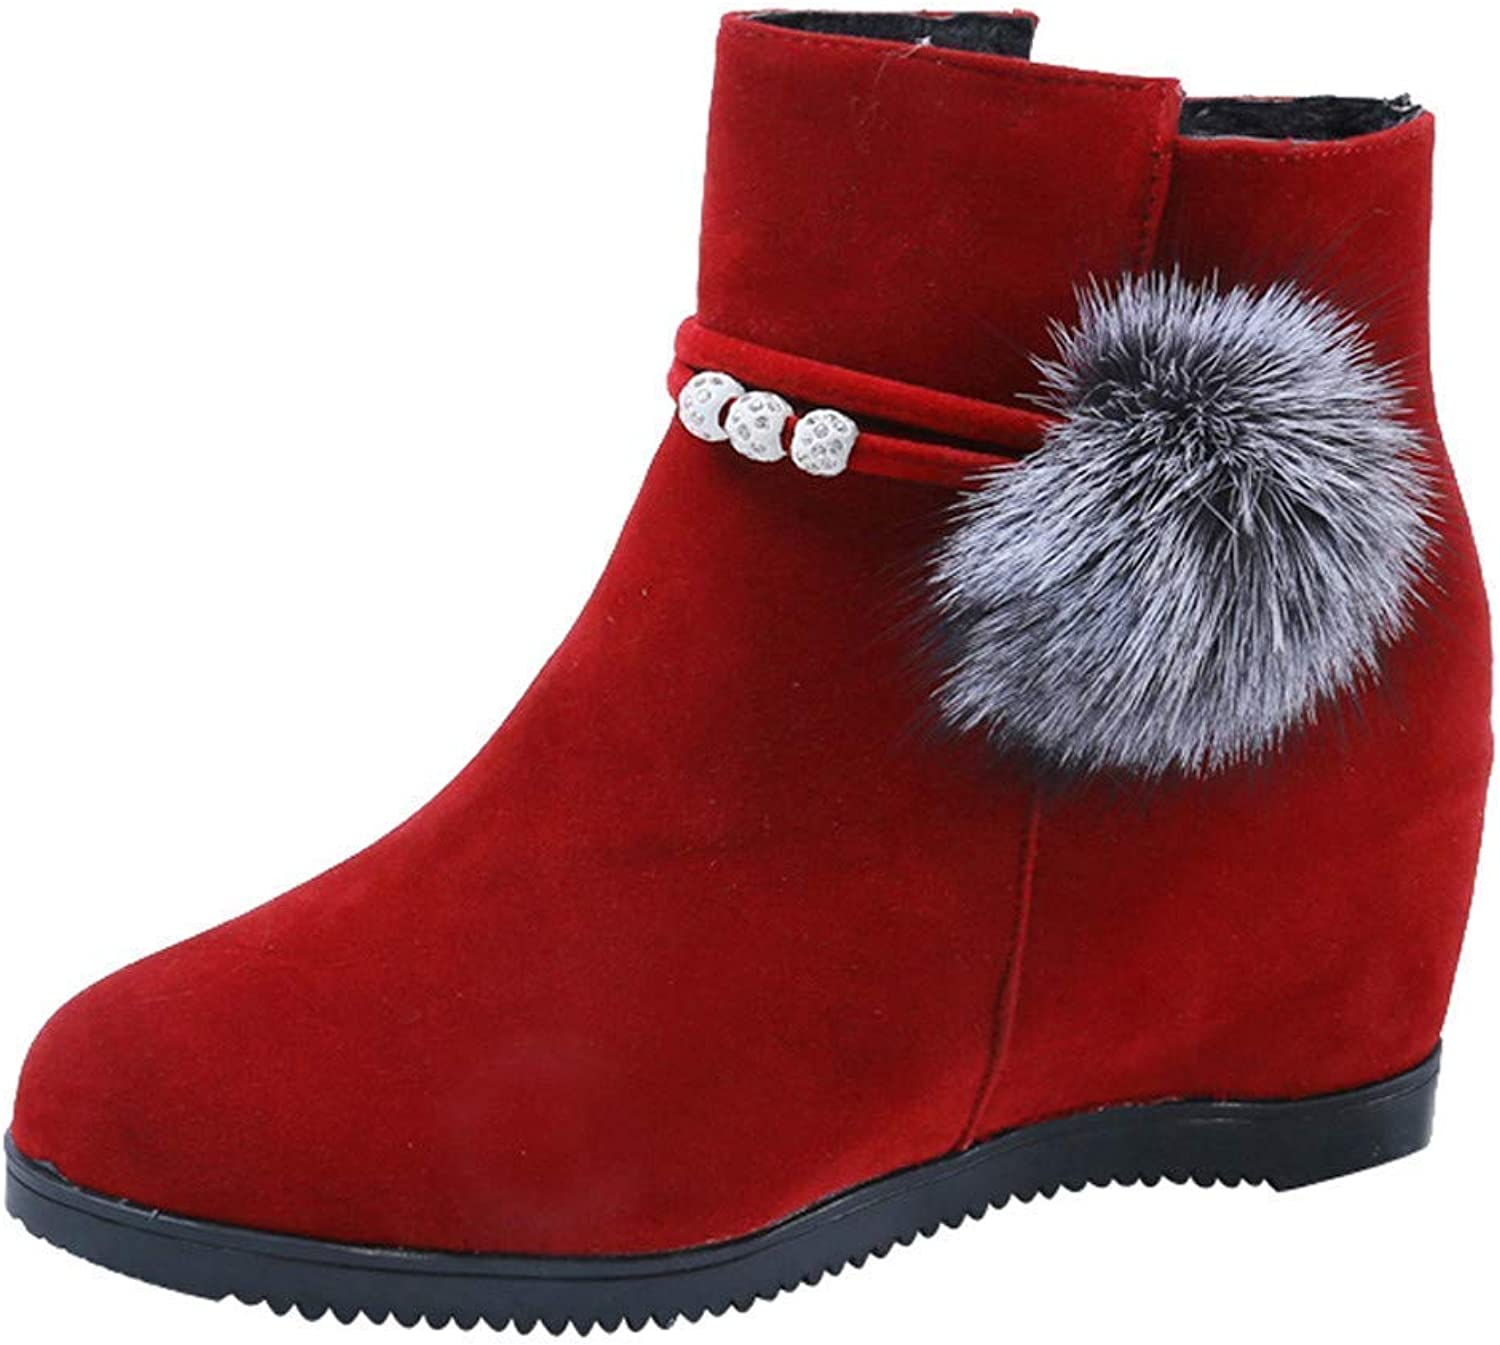 GouuoHi Womens Boots Women Suede Hairball Round Toe Wedges shoes Pure color Zipper Martin Boots Fashion Leisure Elegant Cosy Wild Tight Super Quality for Womens